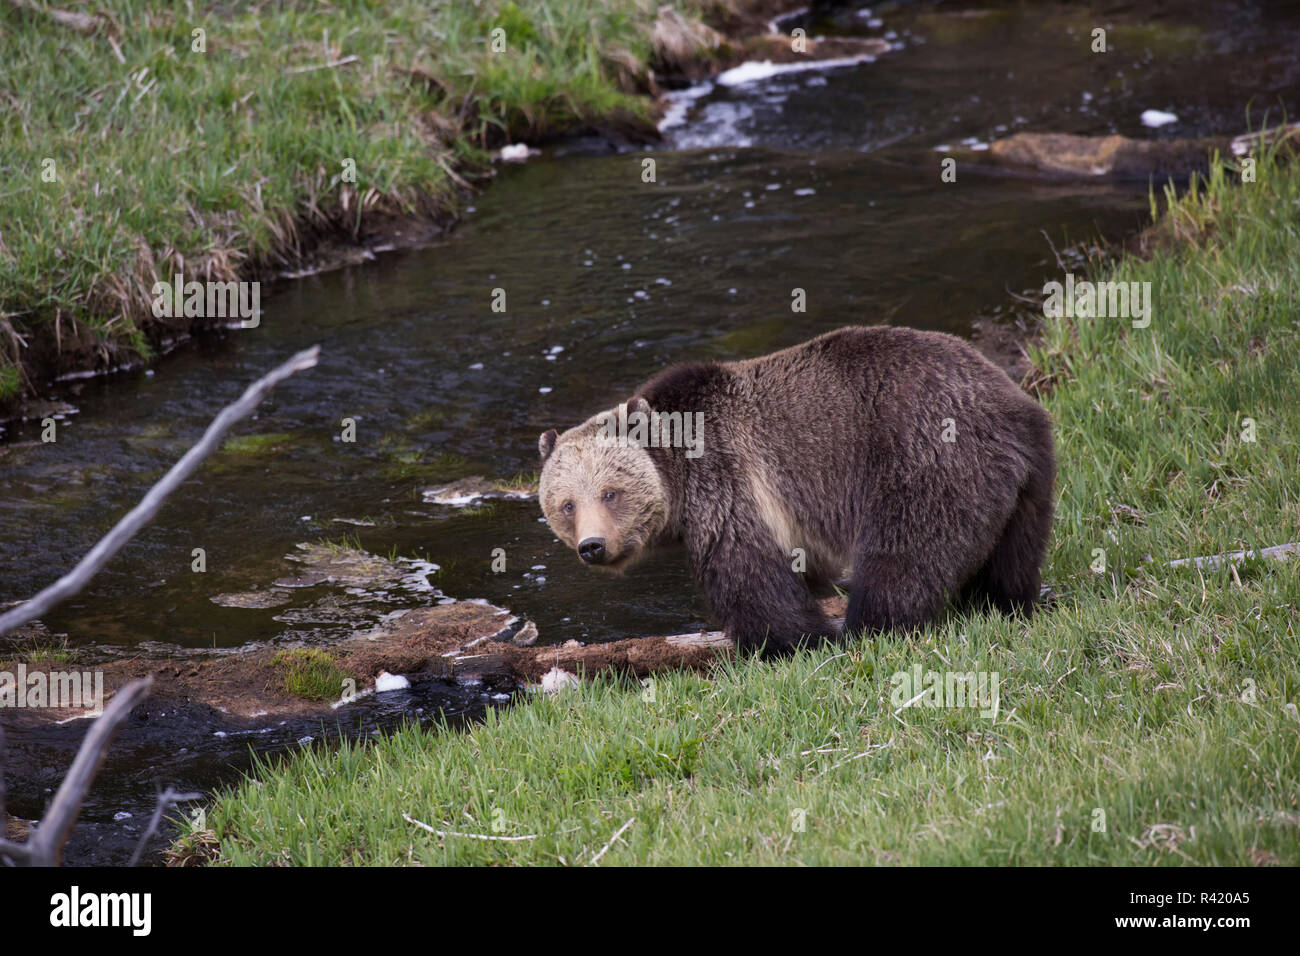 USA, Wyoming, Yellowstone National Park. Grizzly bear pauses while drinking from stream. Credit as: Don Grall / Jaynes Gallery / DanitaDelimont. com - Stock Image